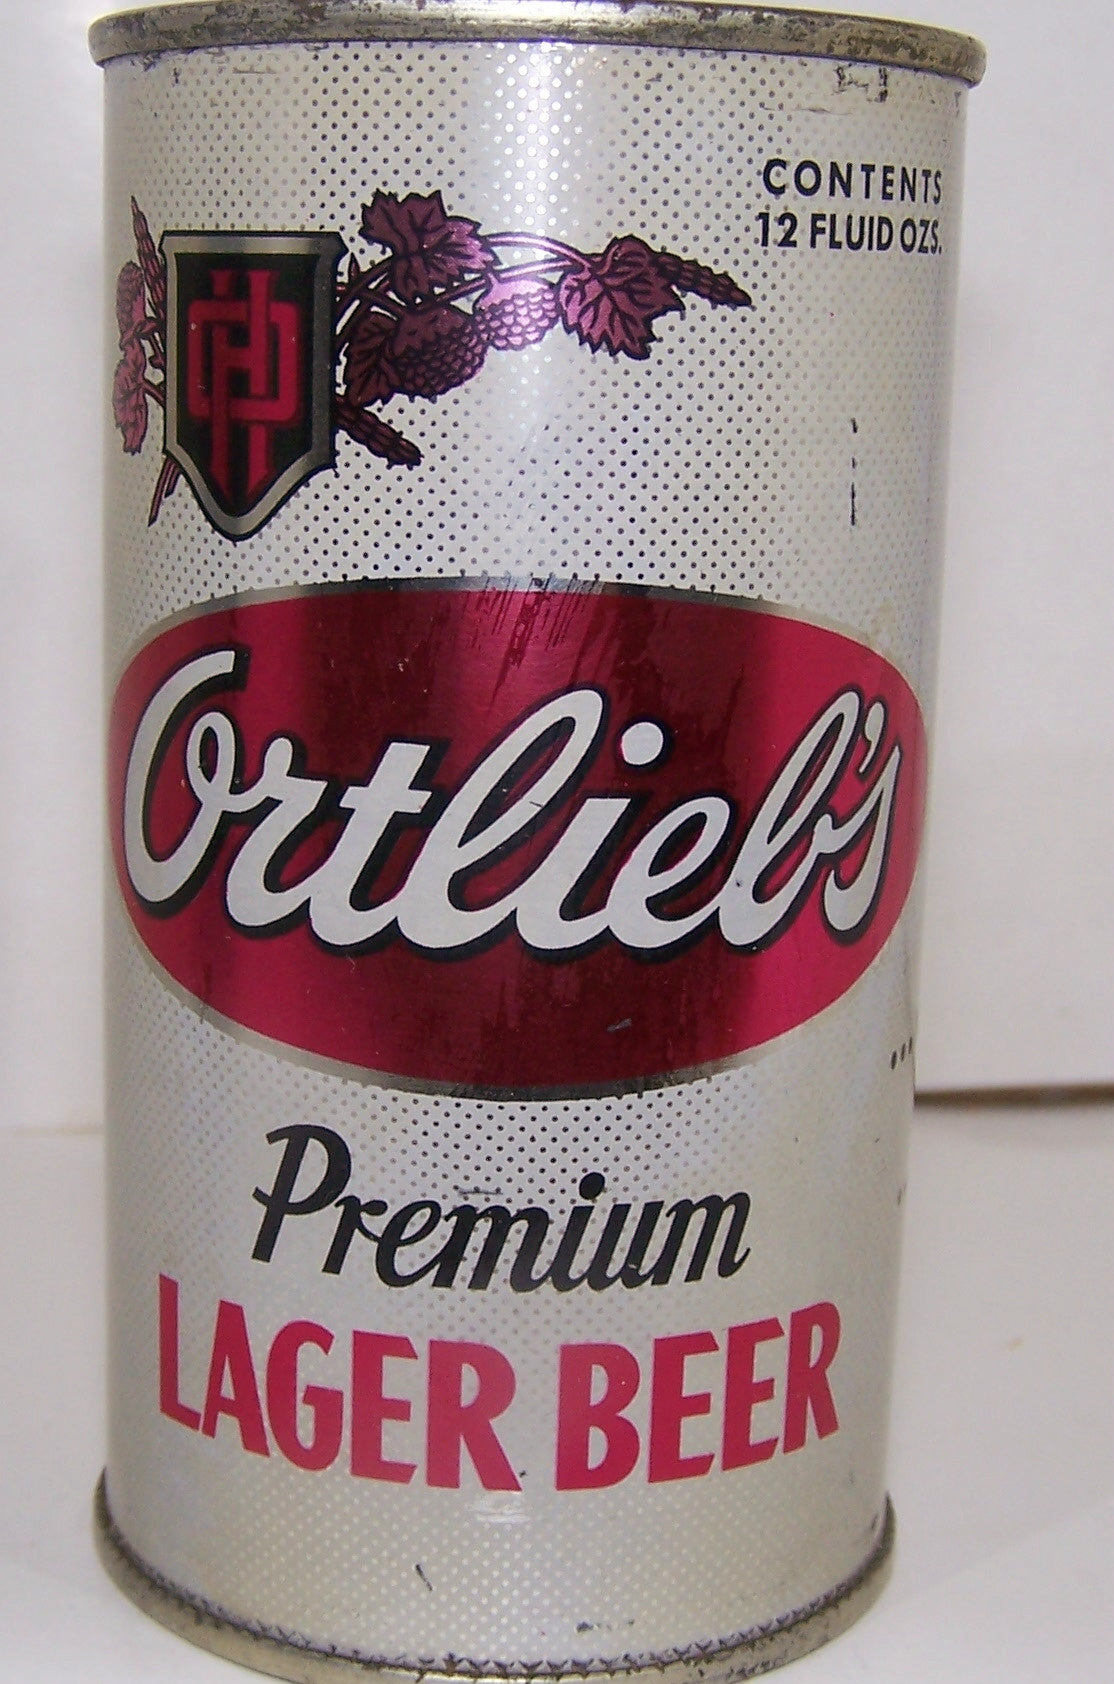 Ortlieb's Premium Lager Beer, (Pink Hops) USBC 109-21, Grade 1- Sold on 09/16/16